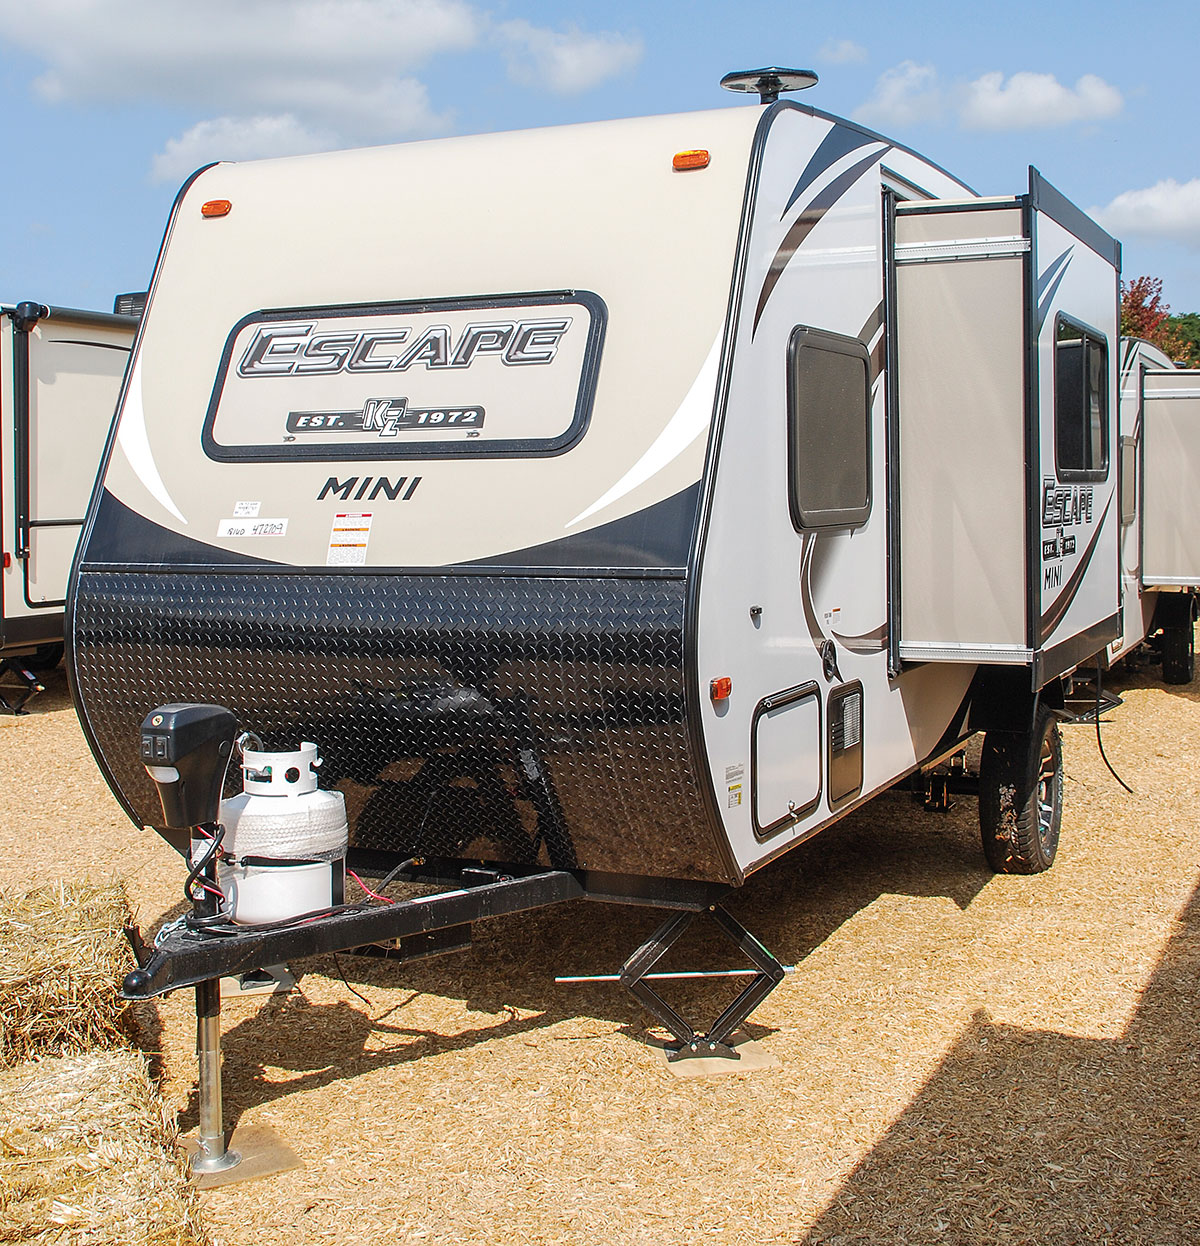 Travel Trailers Under 1500 Lbs: Escape Mini M181UD Ultra Lightweight Travel Trailer